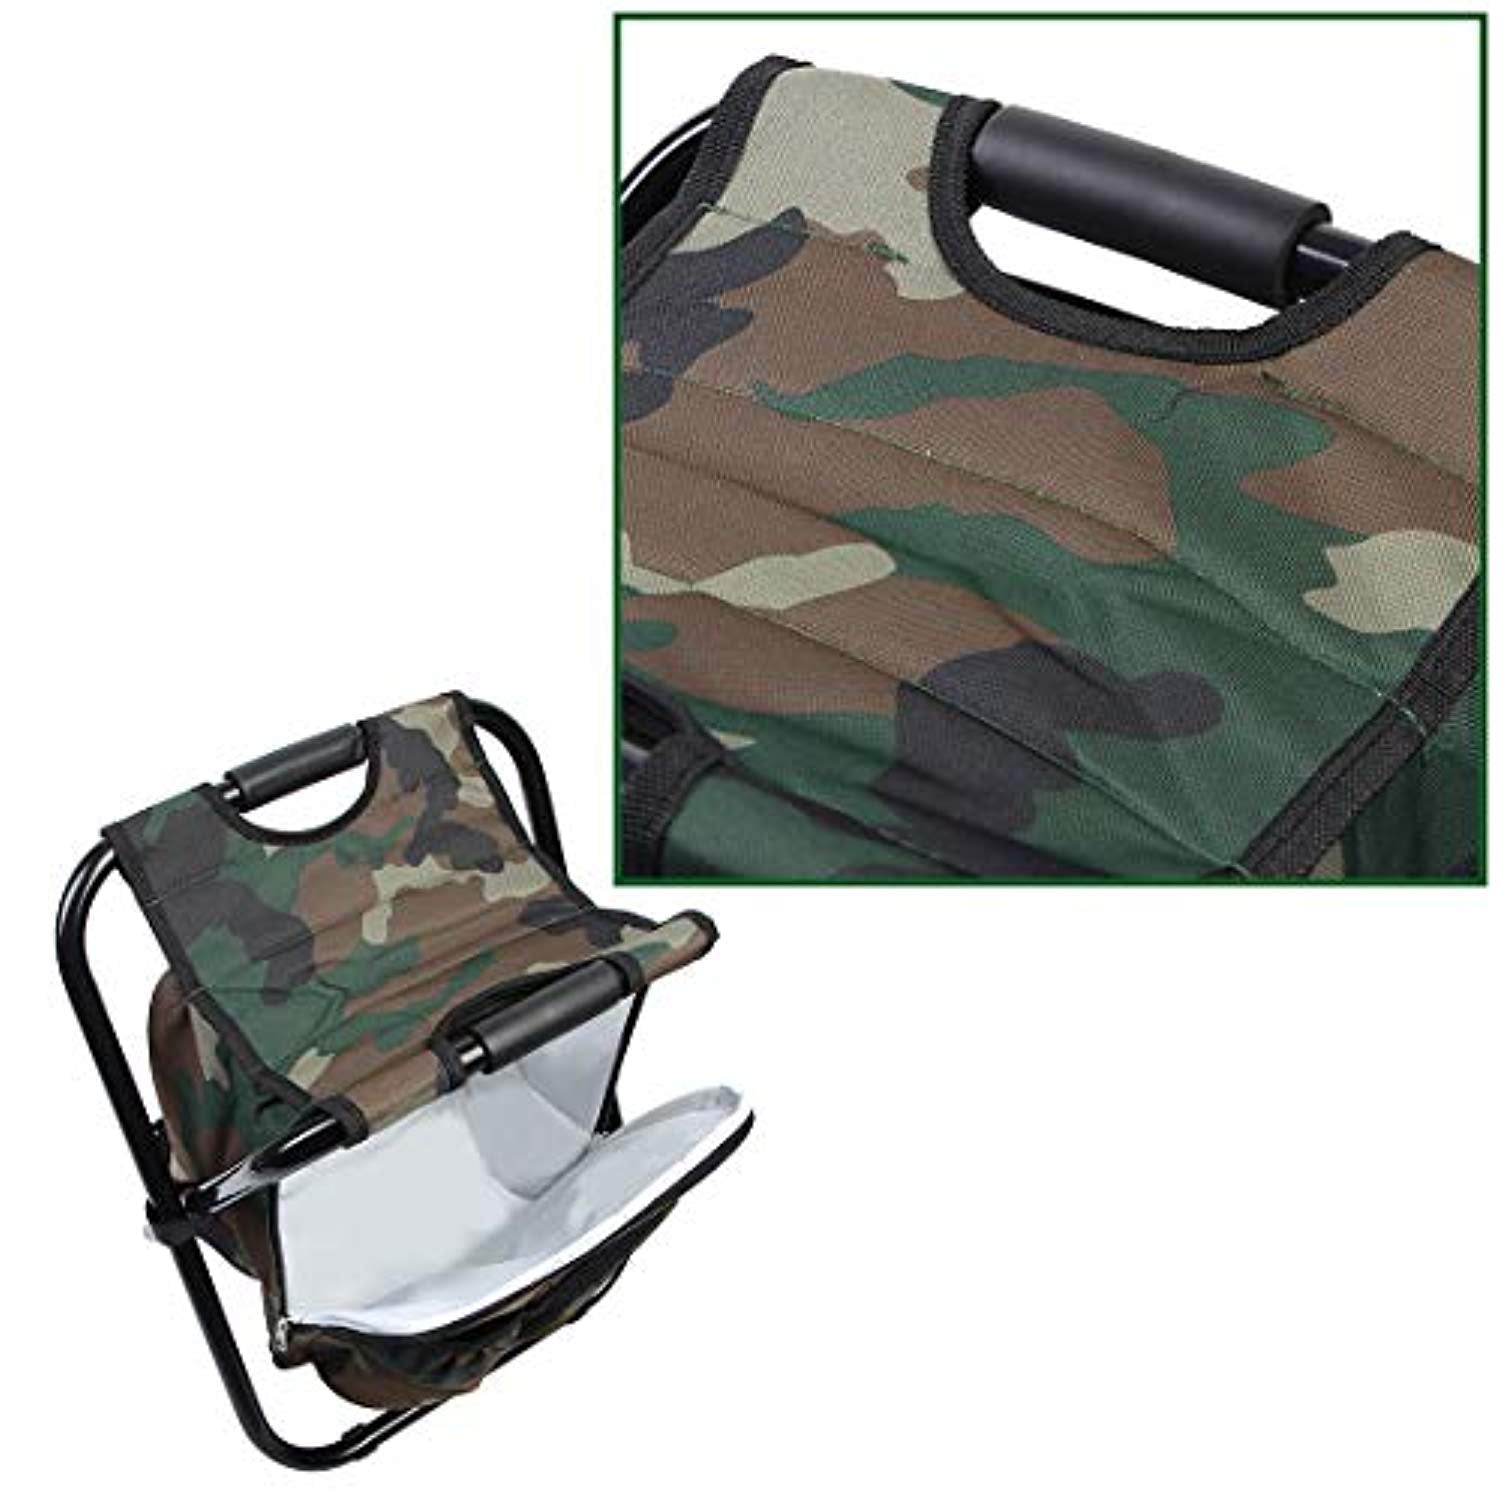 Ationgle Backpack Coolers - Heavy Duty Camping Chair, Ultralight Portable Folding Camping Backpacking Chair, Smart Camping Gear Beach Accessories Hiking Backpack, Camo